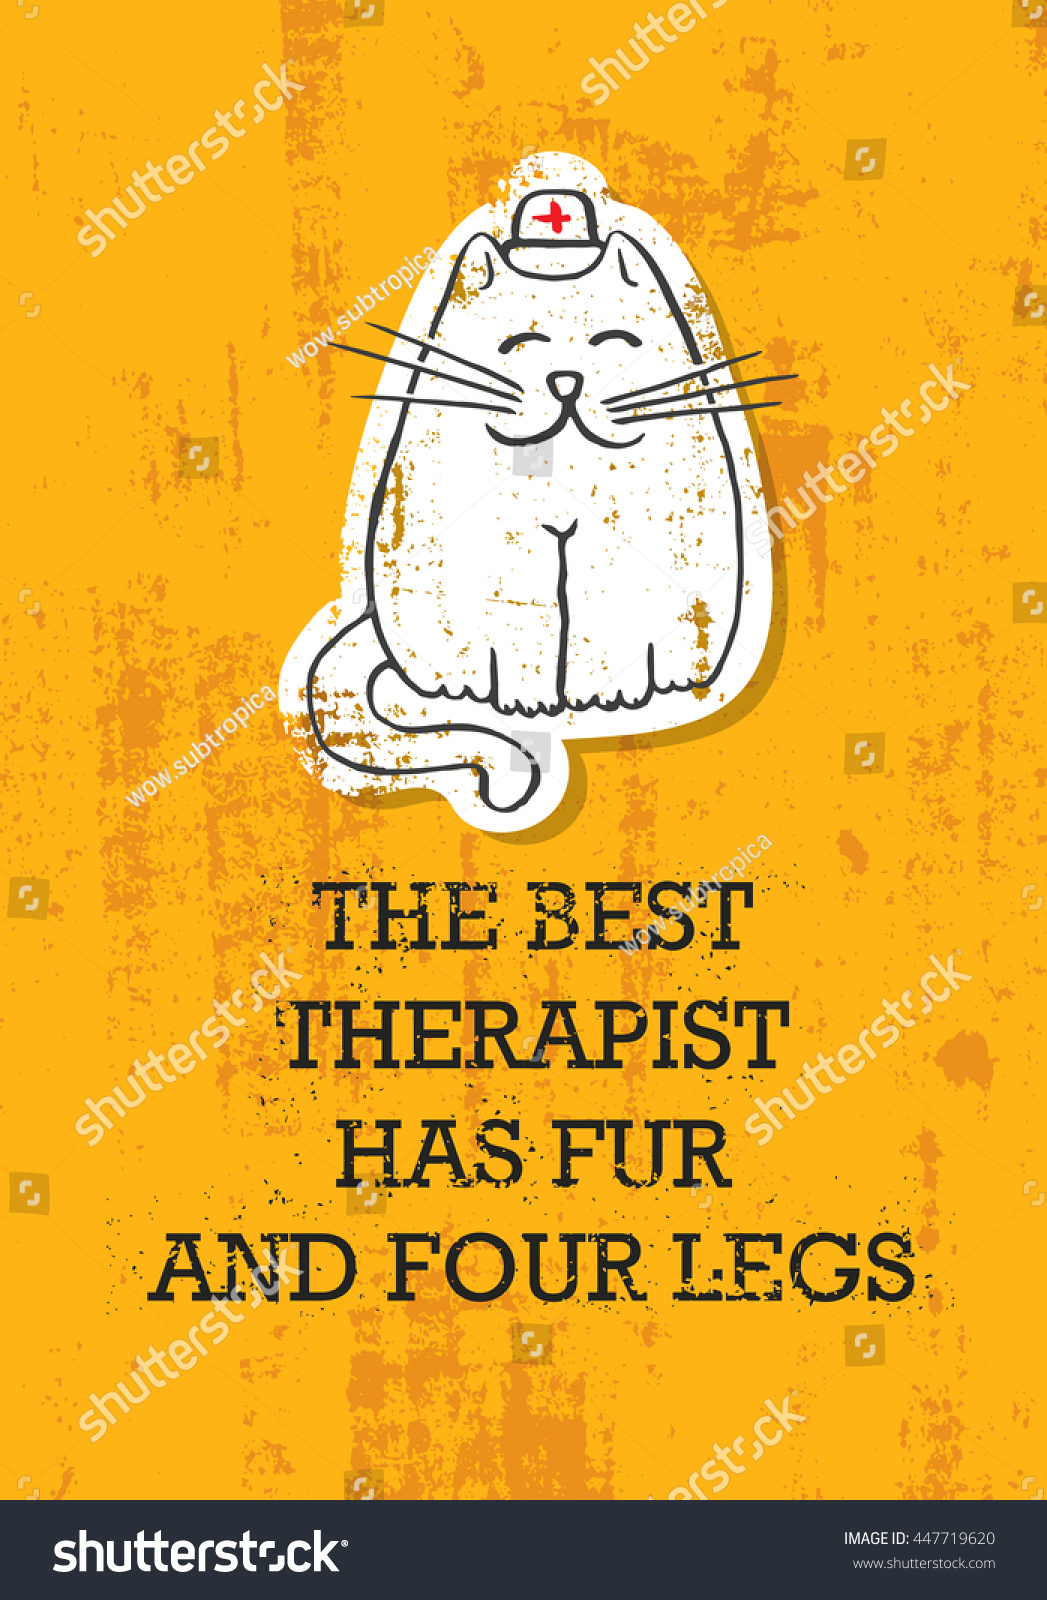 Poster design meaning - The Best Therapist Has Fur And Four Legs Meaning Cute Funny Quote Banner Concept